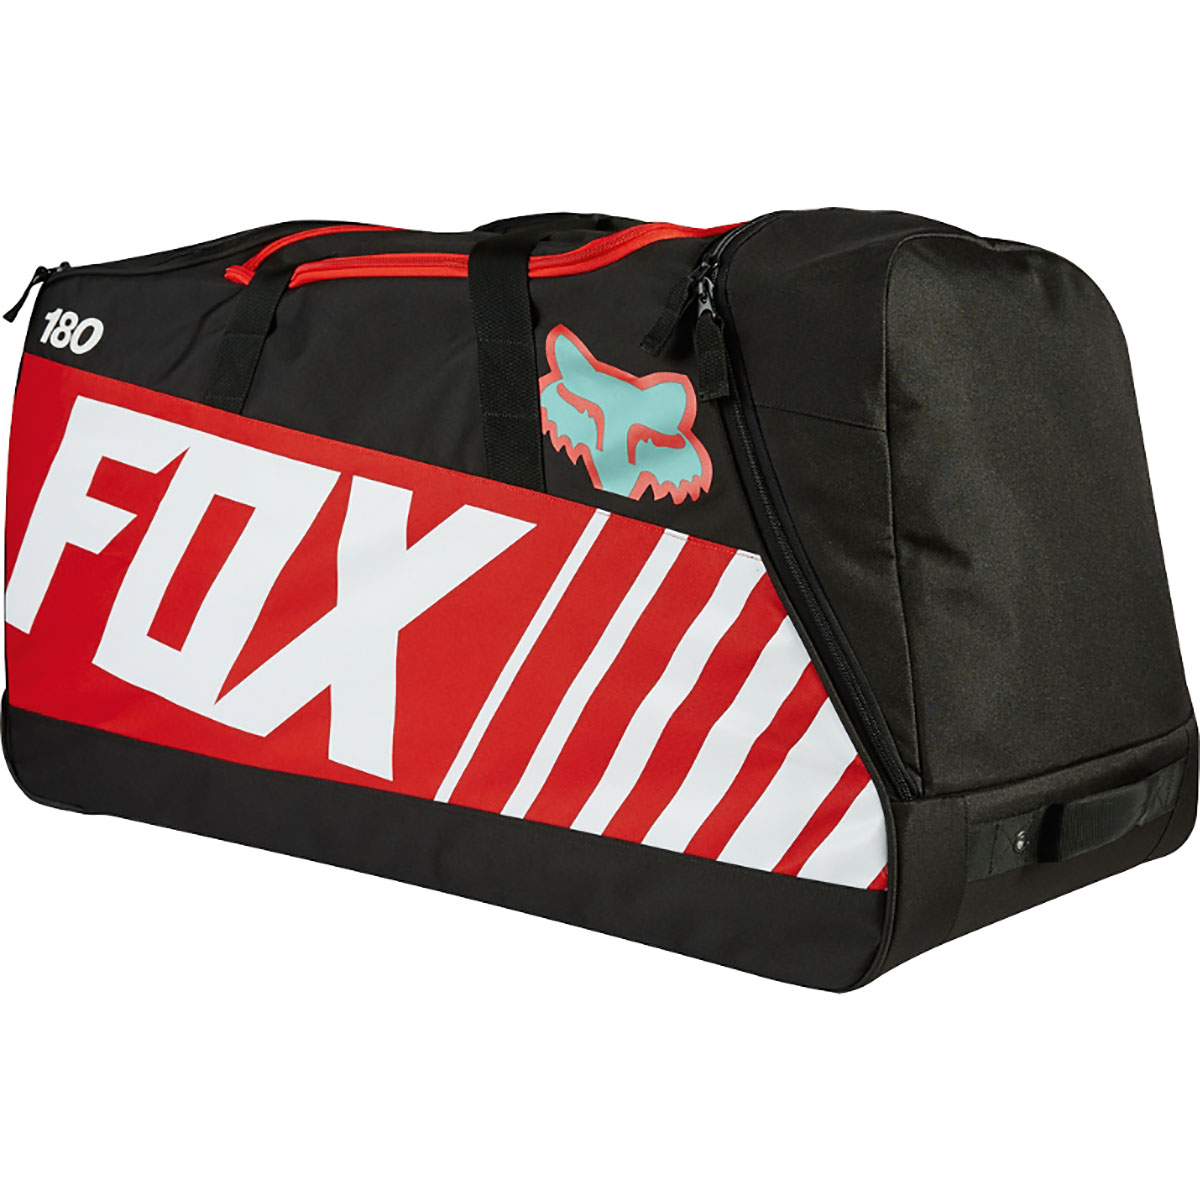 Fox cross motoros utazótáska 180 Creo Shuttle Gearbag Roller Sayak Red